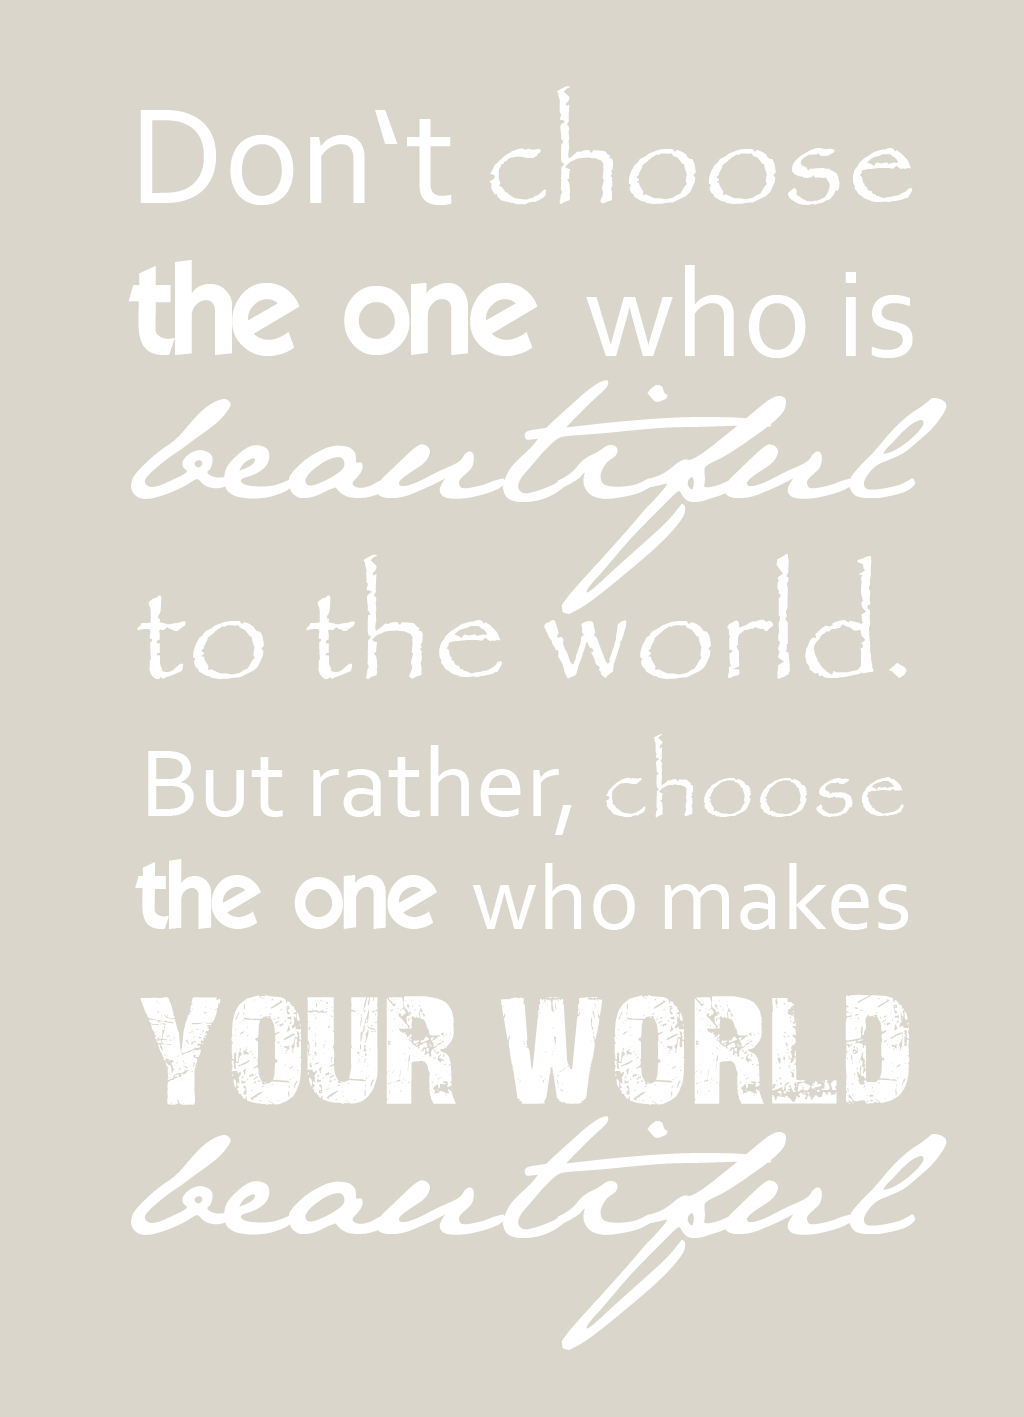 Don't choose the one who is beautiful to the world but rather choose the one whi makes your world beautiful